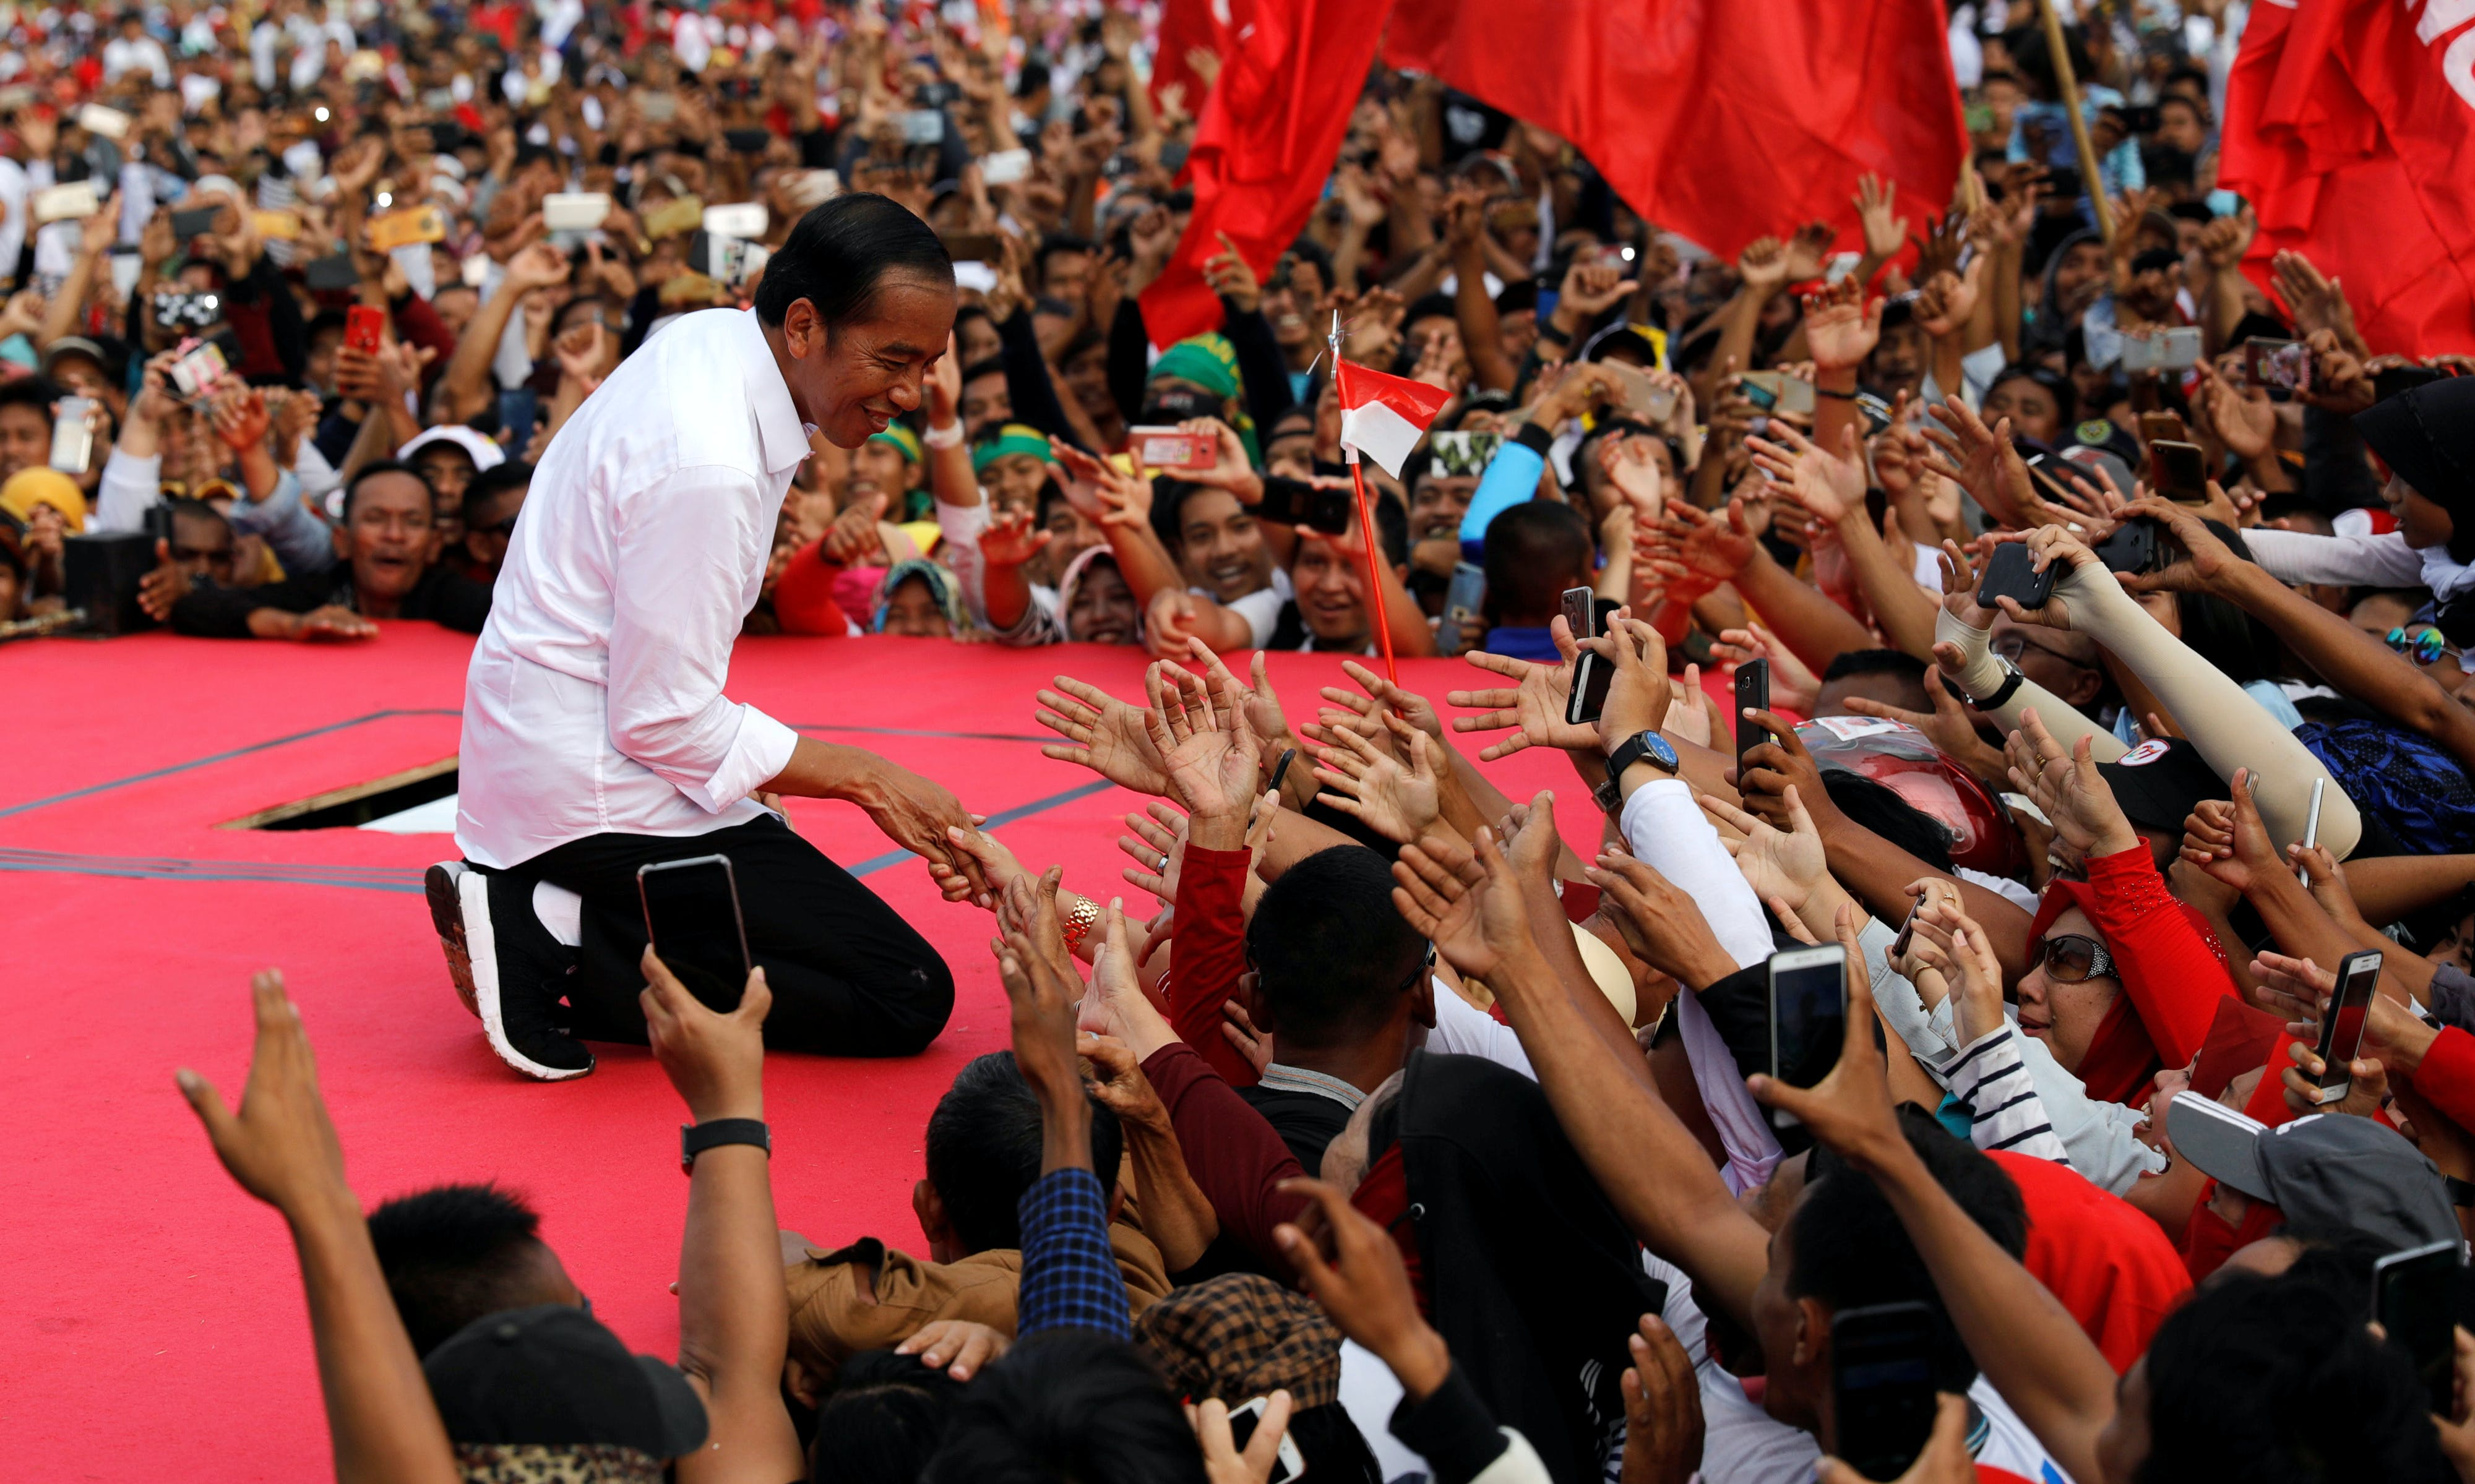 INDONESIA: Which Candidates Are Running on Islamic Identity?